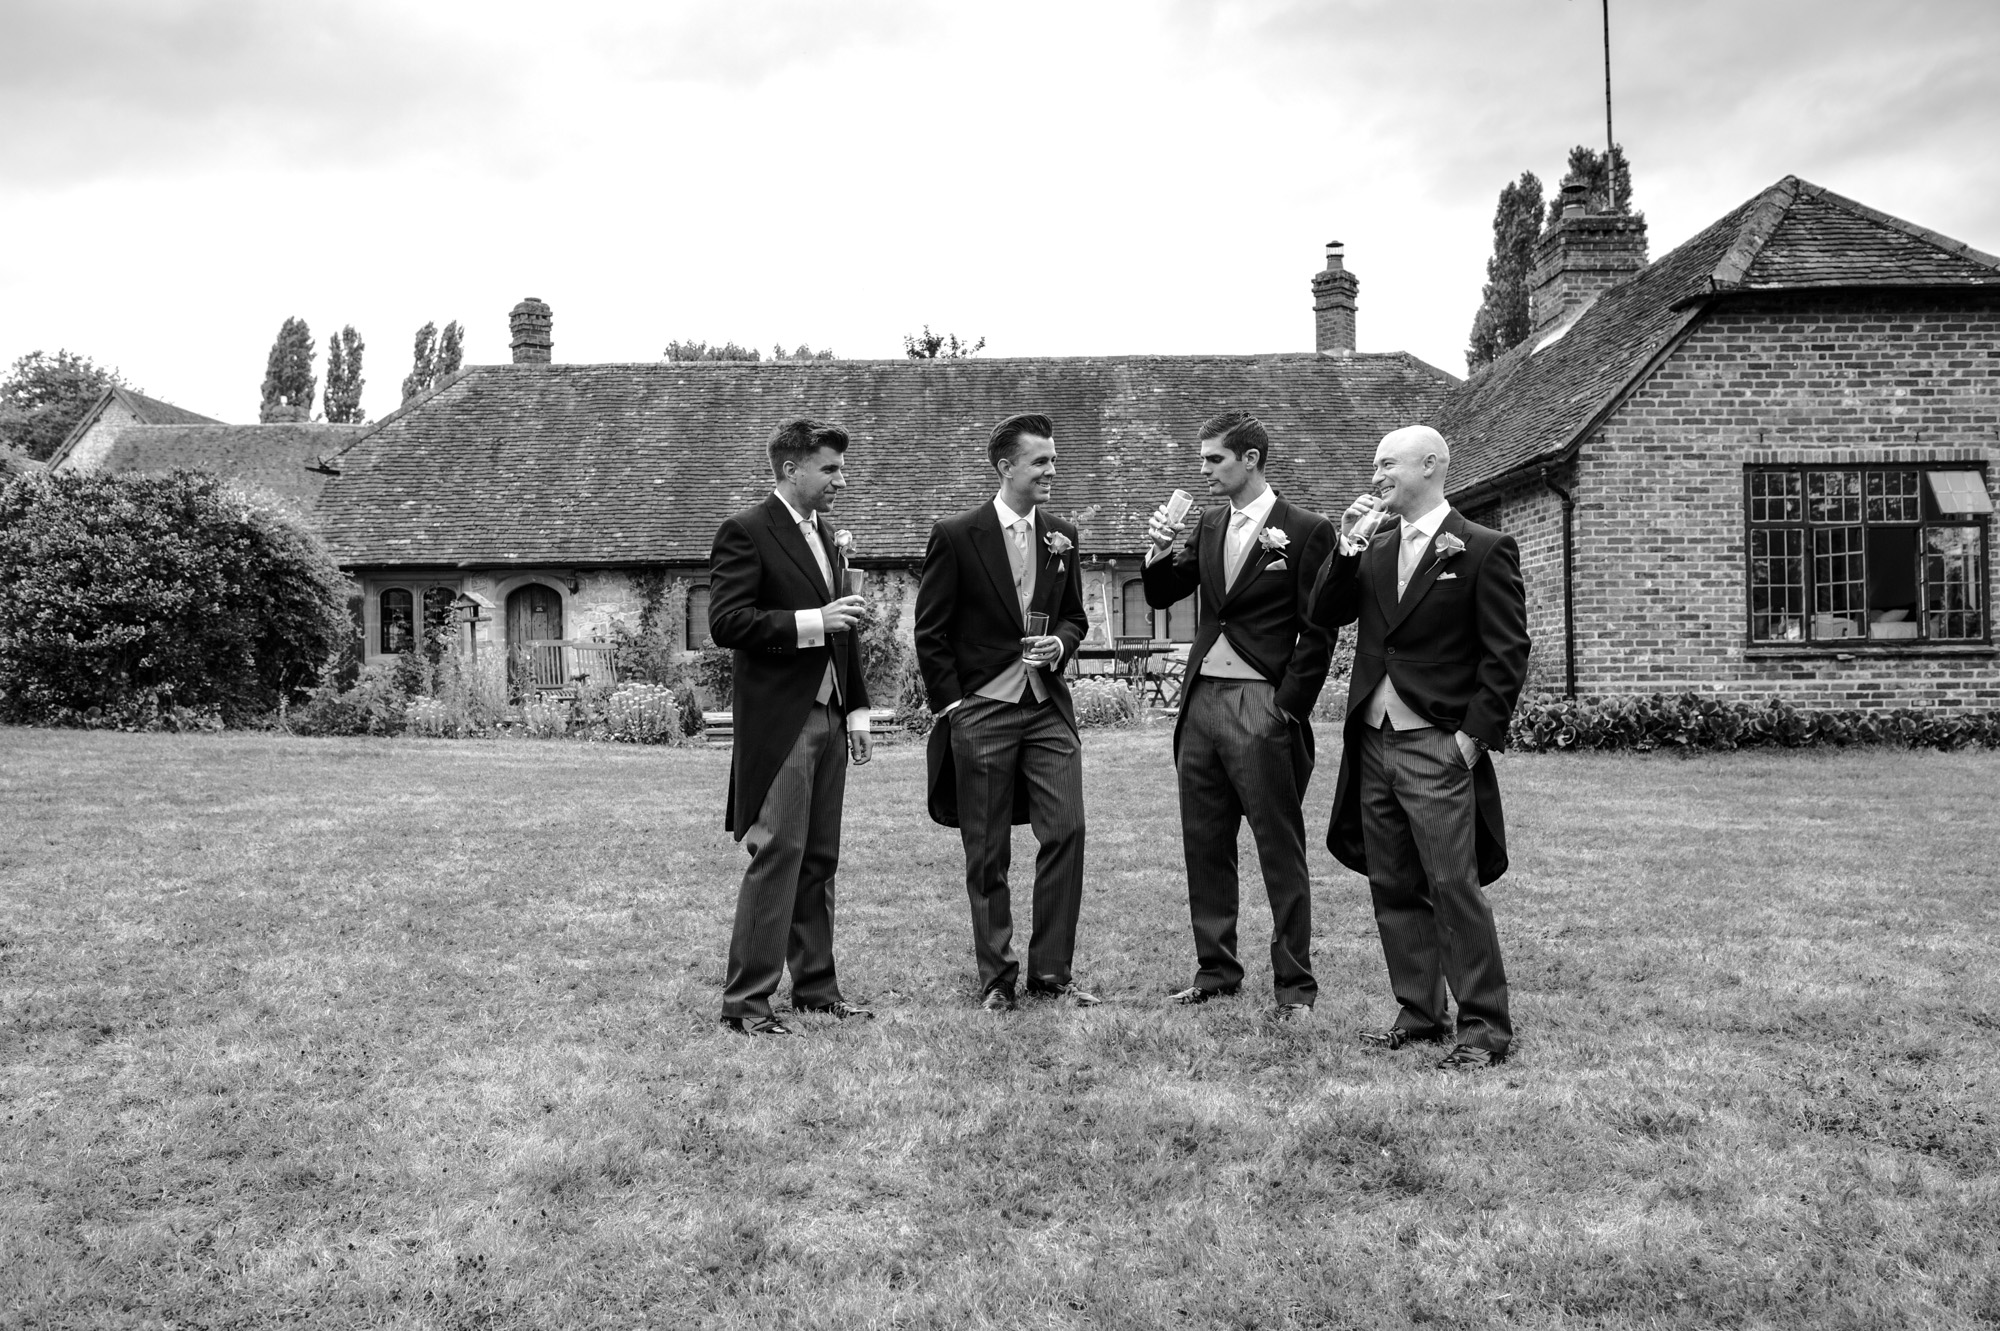 Notley Barn Wedding 26.10.18 5.jpg